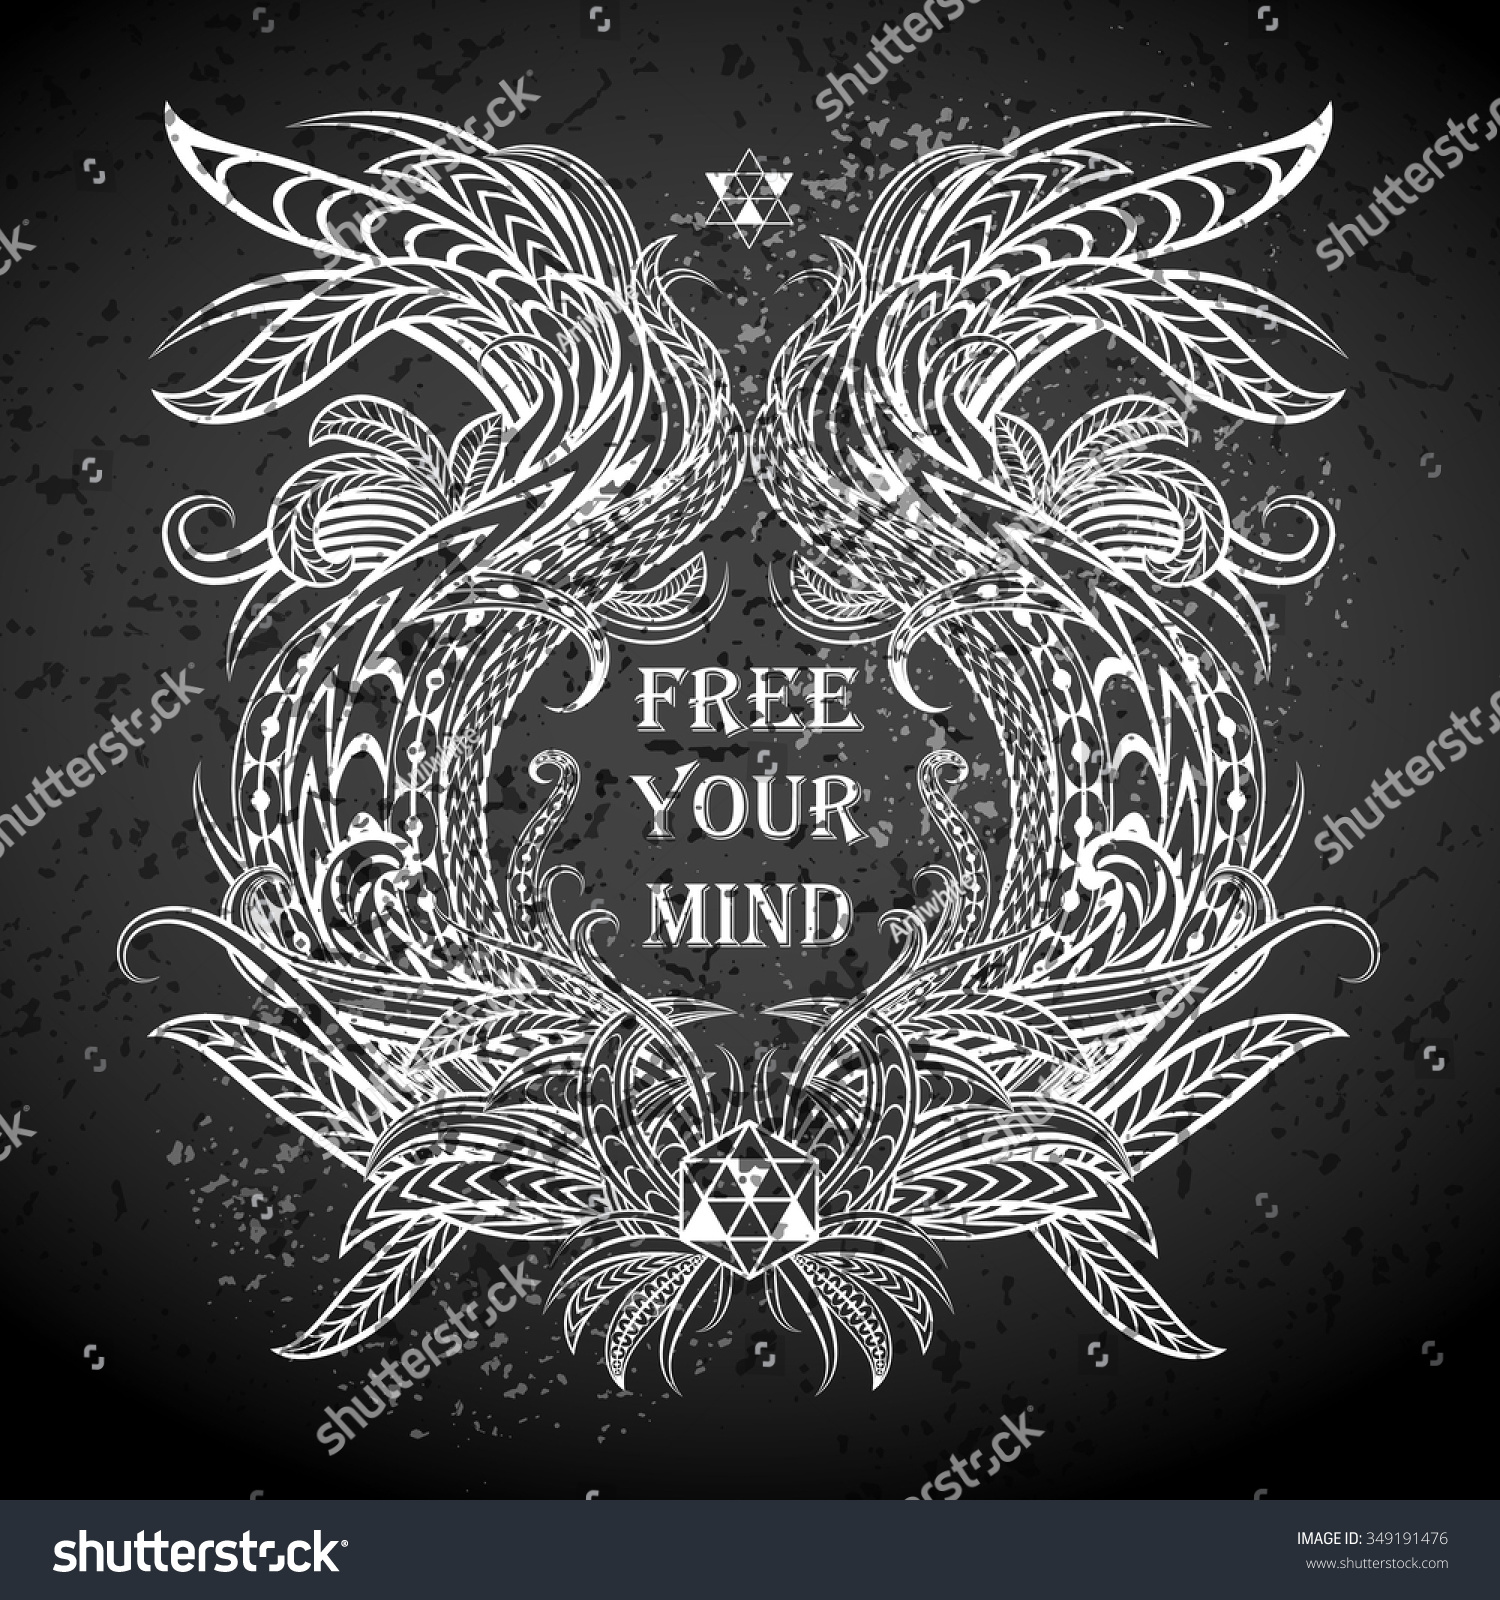 Free Your Mind Quotes Motivation Free Your Mind Ethnic Frame Stock Vector 349191476